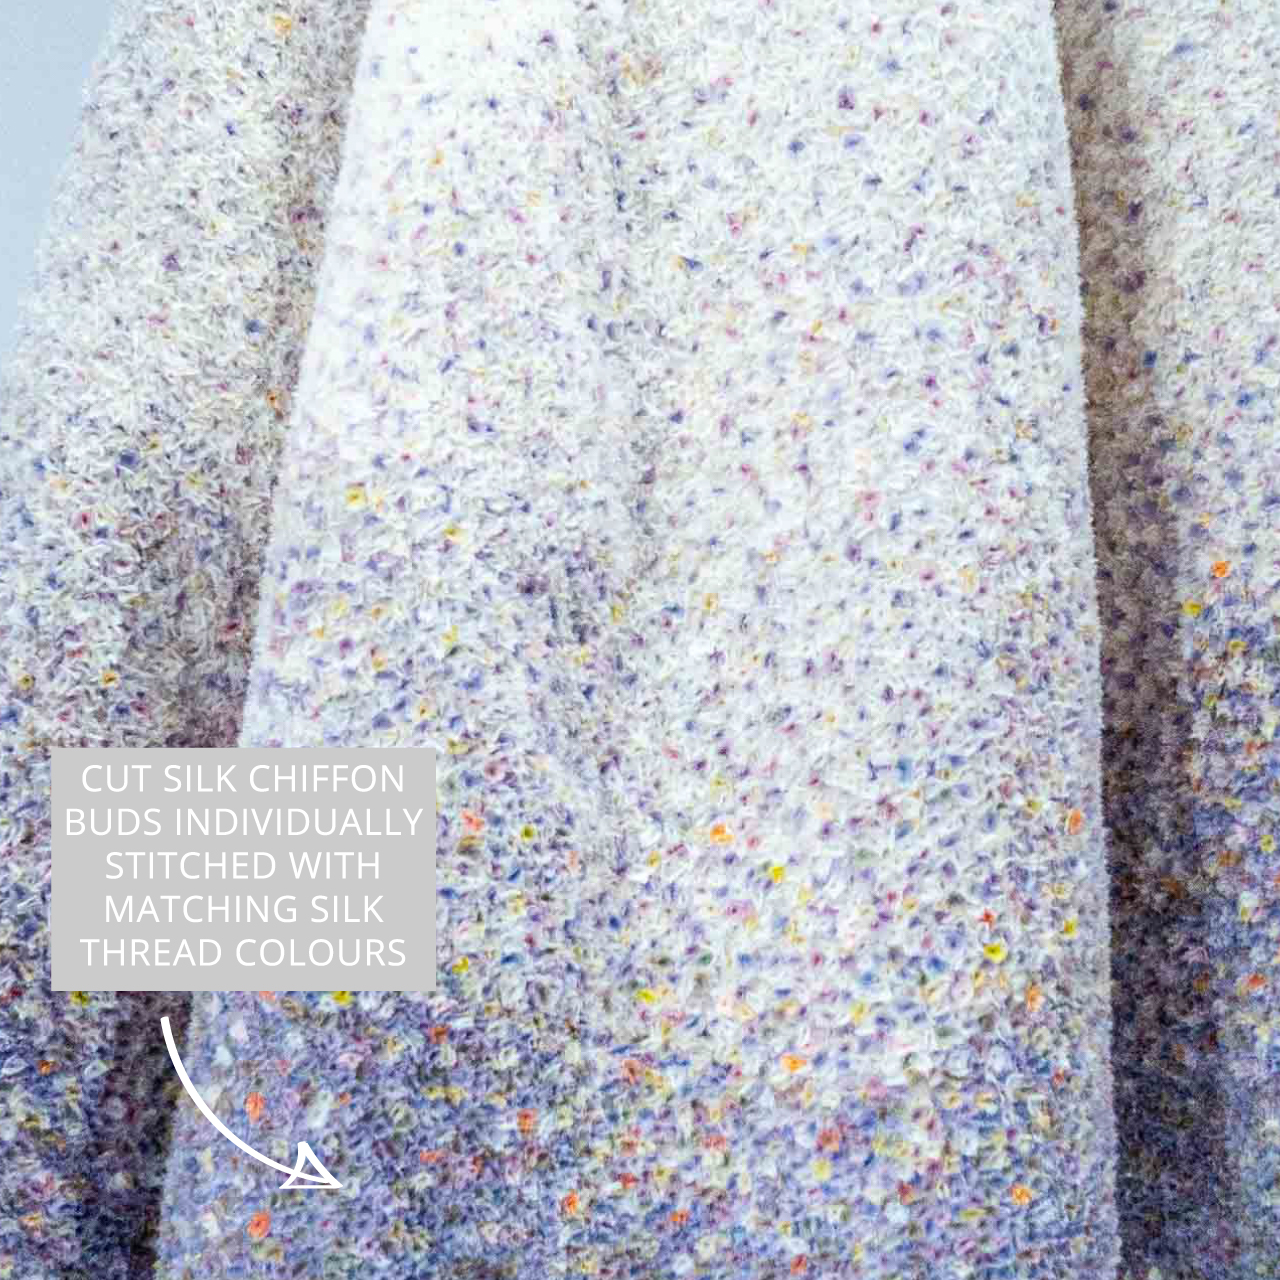 Silk chiffon bud embellishment. Christian Dior by Raf Simons, Haute Couture, Autumn-Winter 2012. Taken at the V&A exhibition © The Cutting Class, 2019.